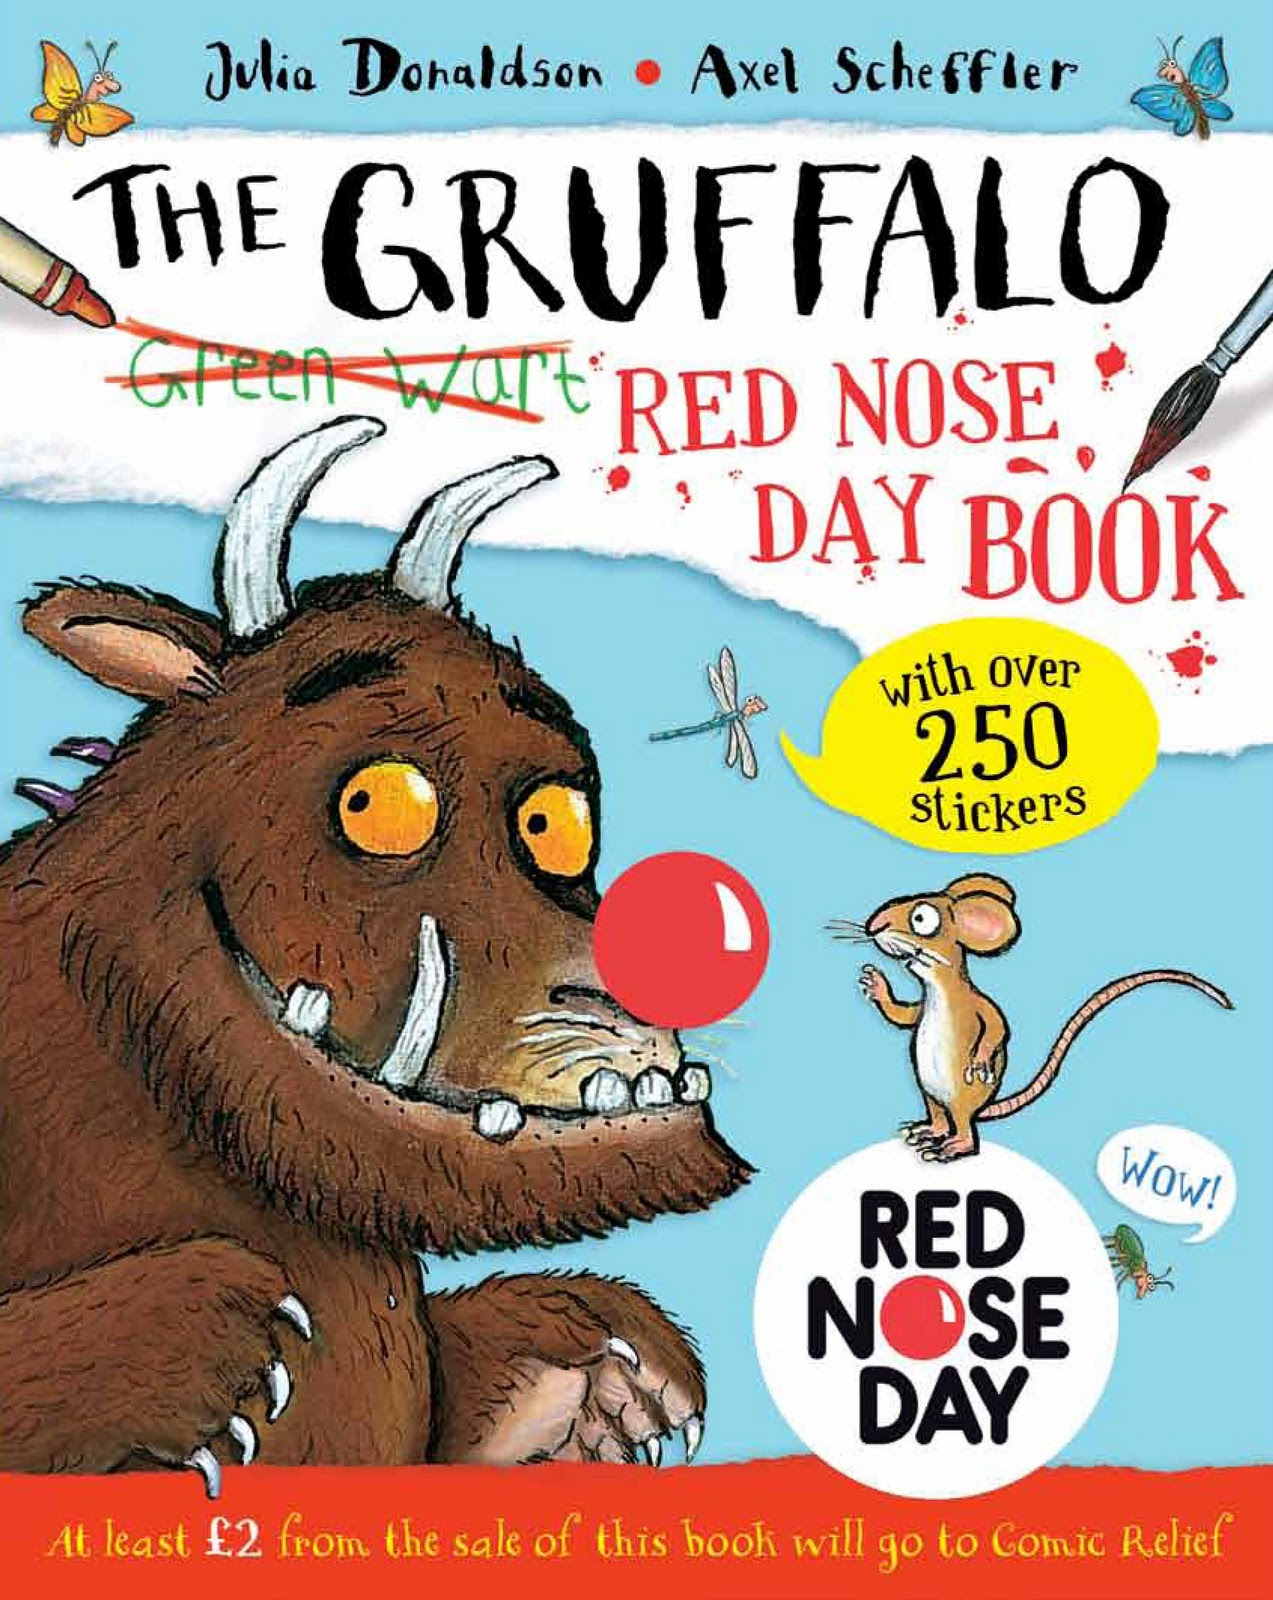 http://2.bp.blogspot.com/_oYWWBxuA2MU/TOF5UDaPyAI/AAAAAAAAj3k/1YBQyBg0aag/s1600/The+Gruffalo+Red+Nose+Day+cover.jpeg